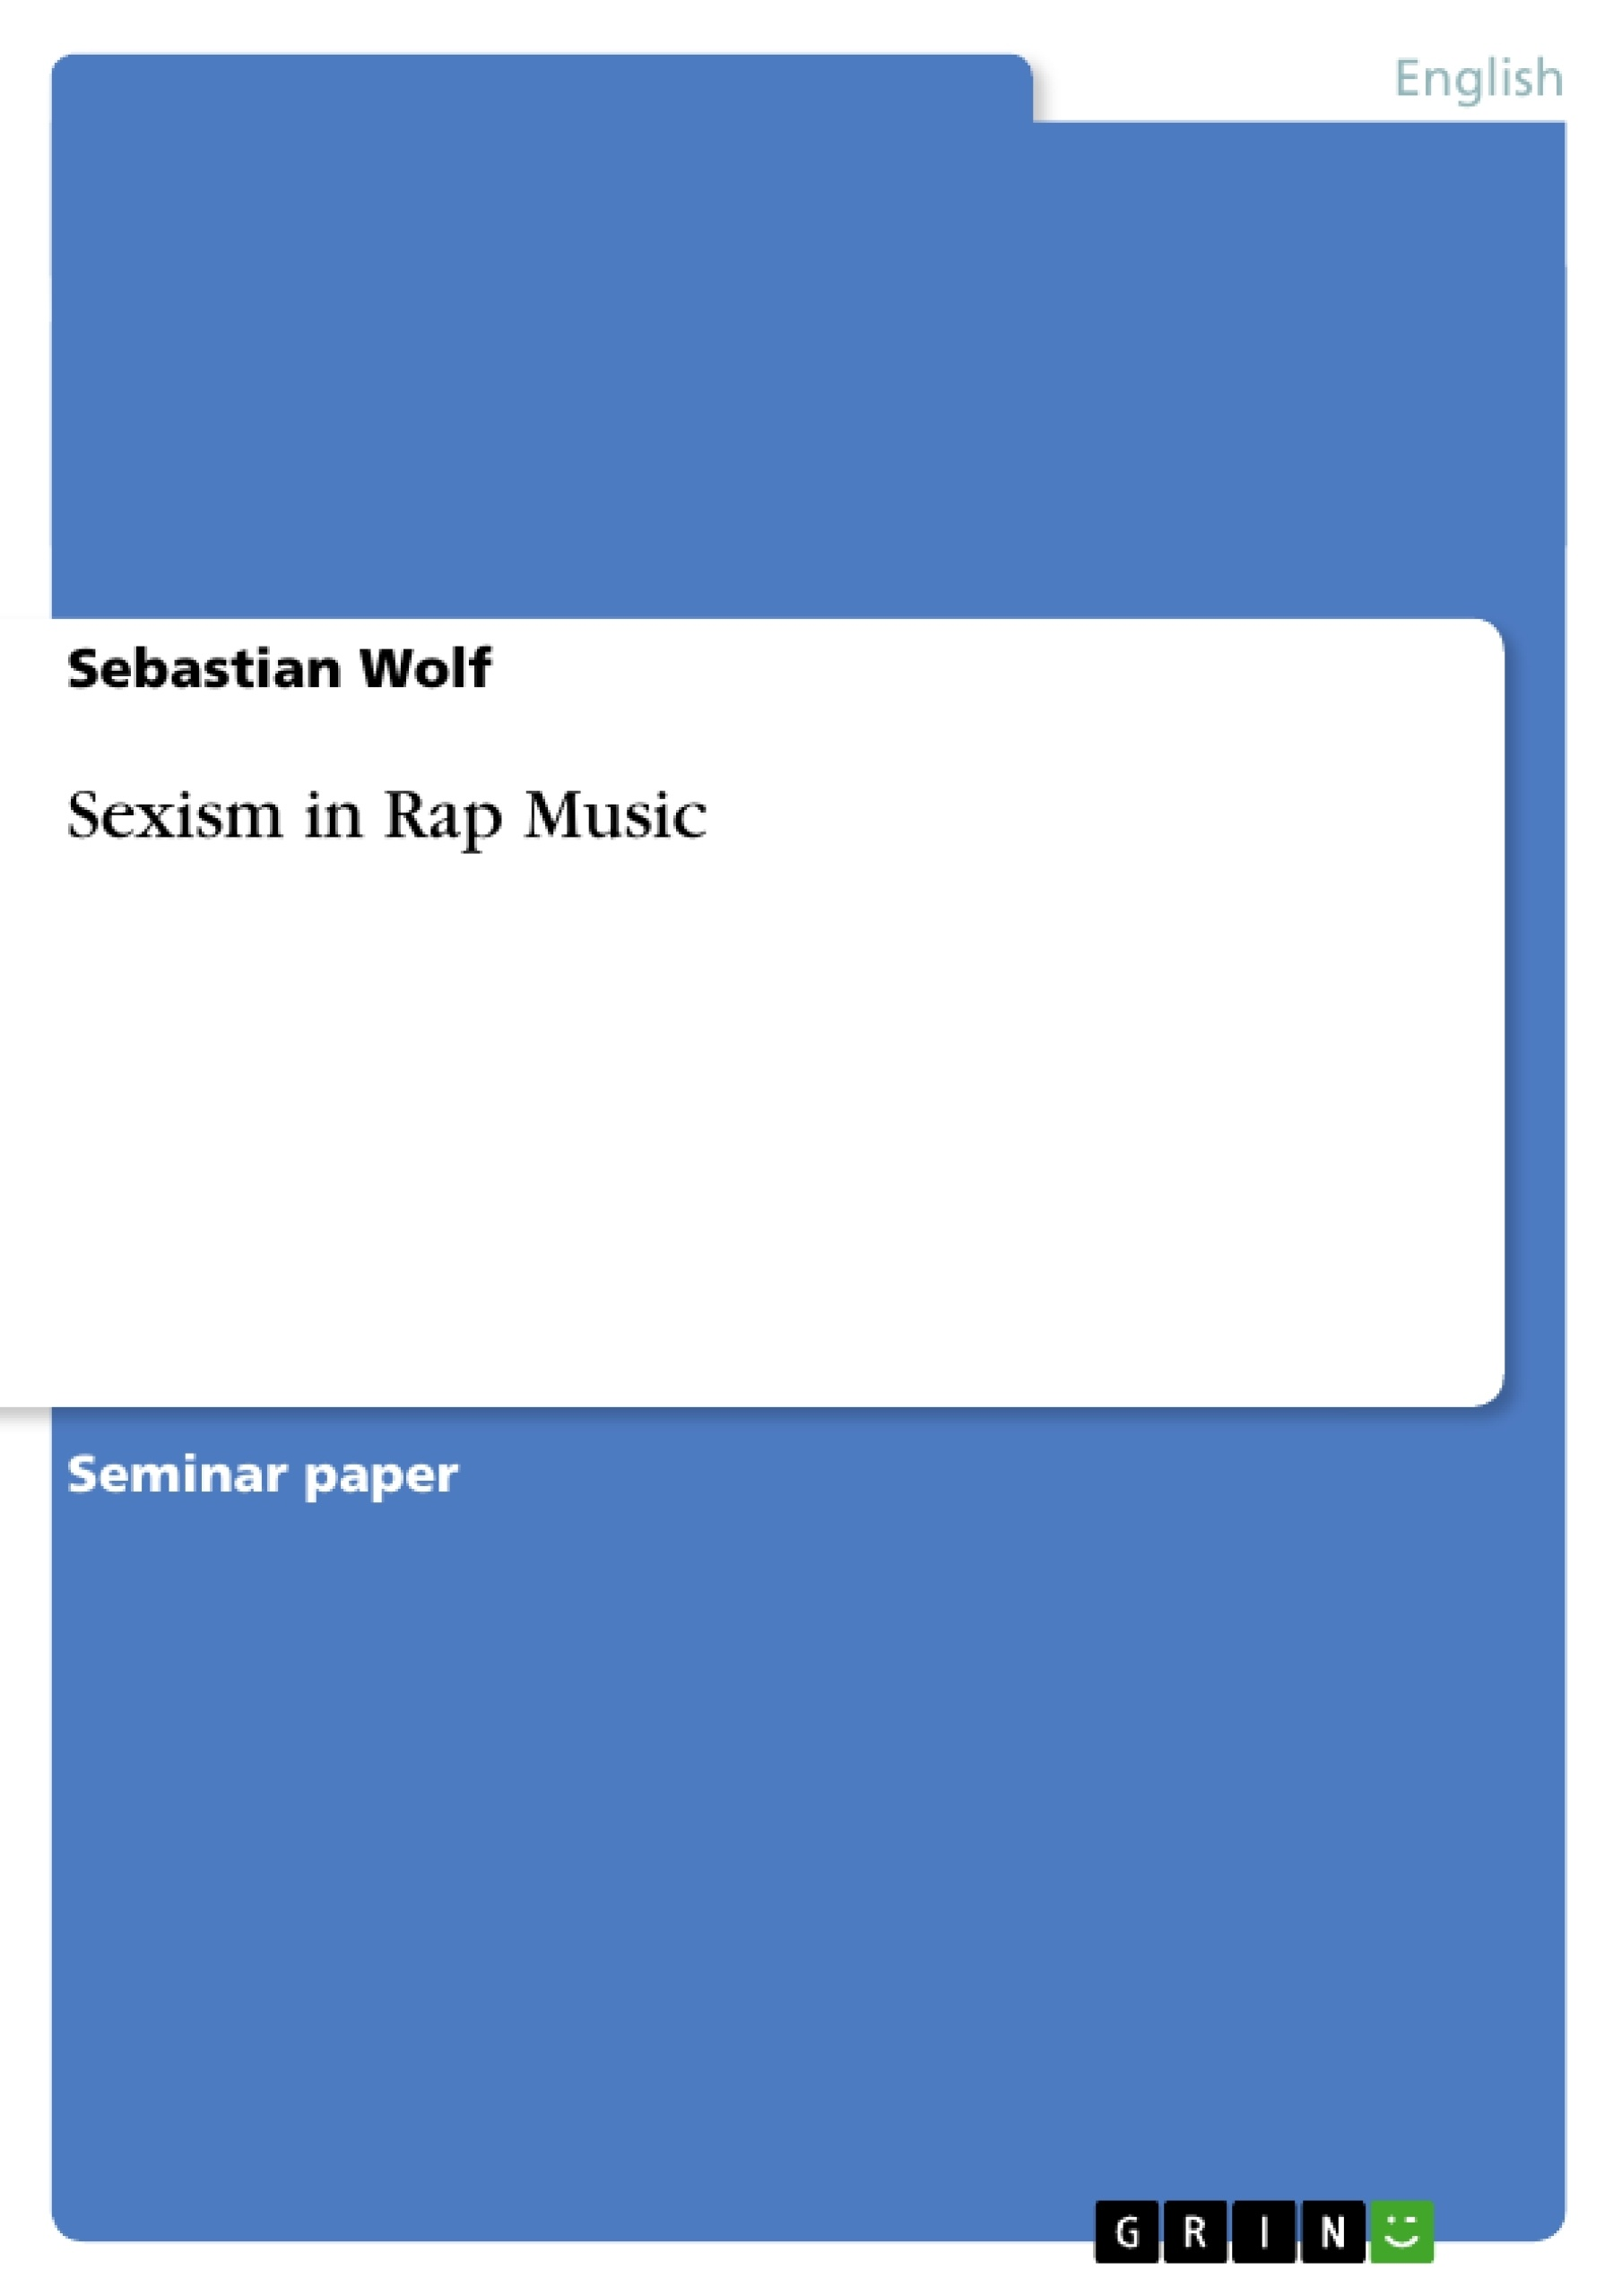 sexism in hip hop essay 91 121 113 106 sexism in hip hop essay